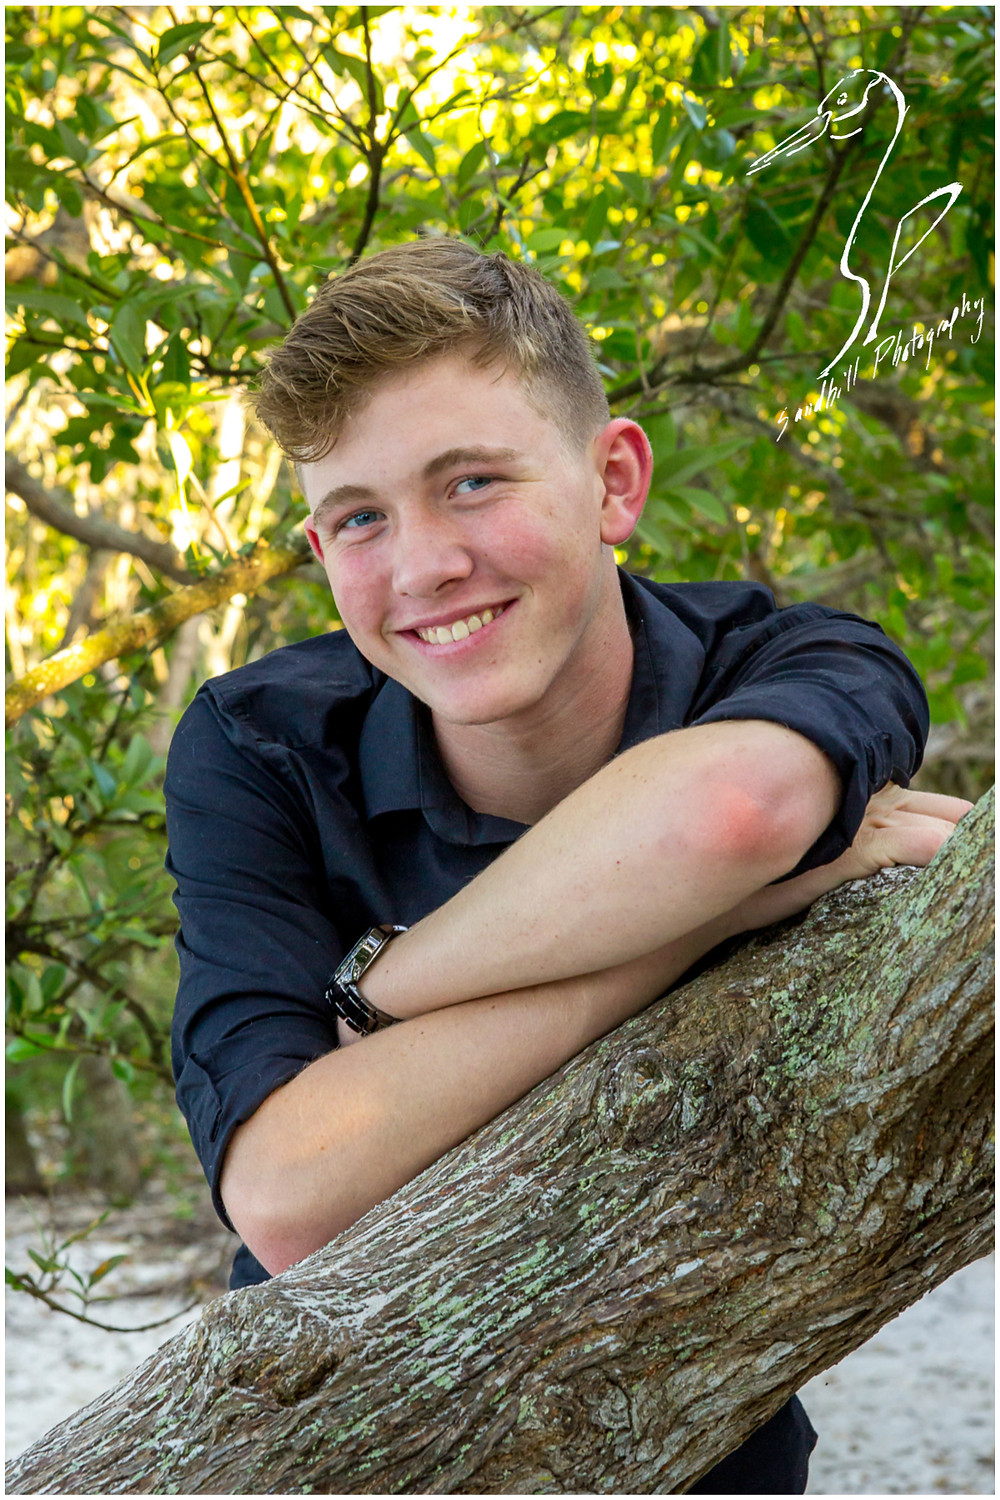 DeSoto National Memorial Photography, Senior Picture of a young man leaning against a tree branch in the woods